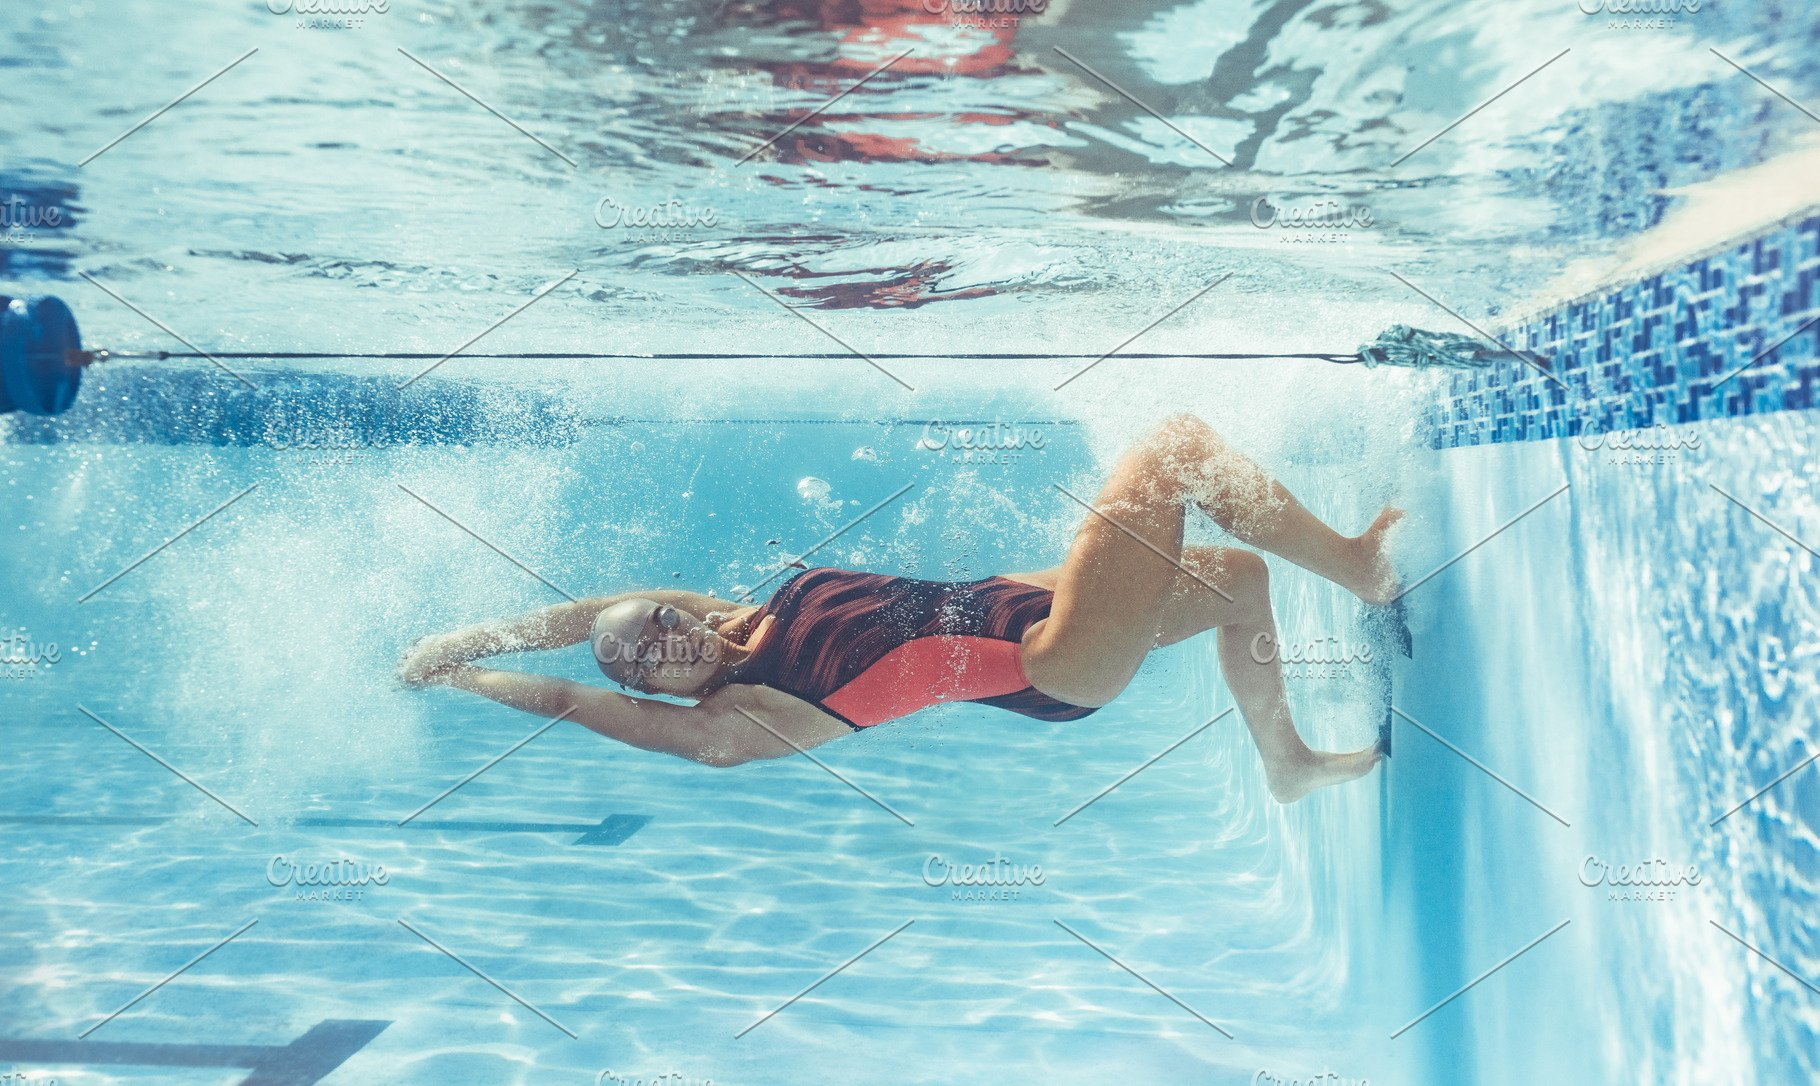 Woman swimmer training for swimming ~ Sports Photos ~ Creative Market